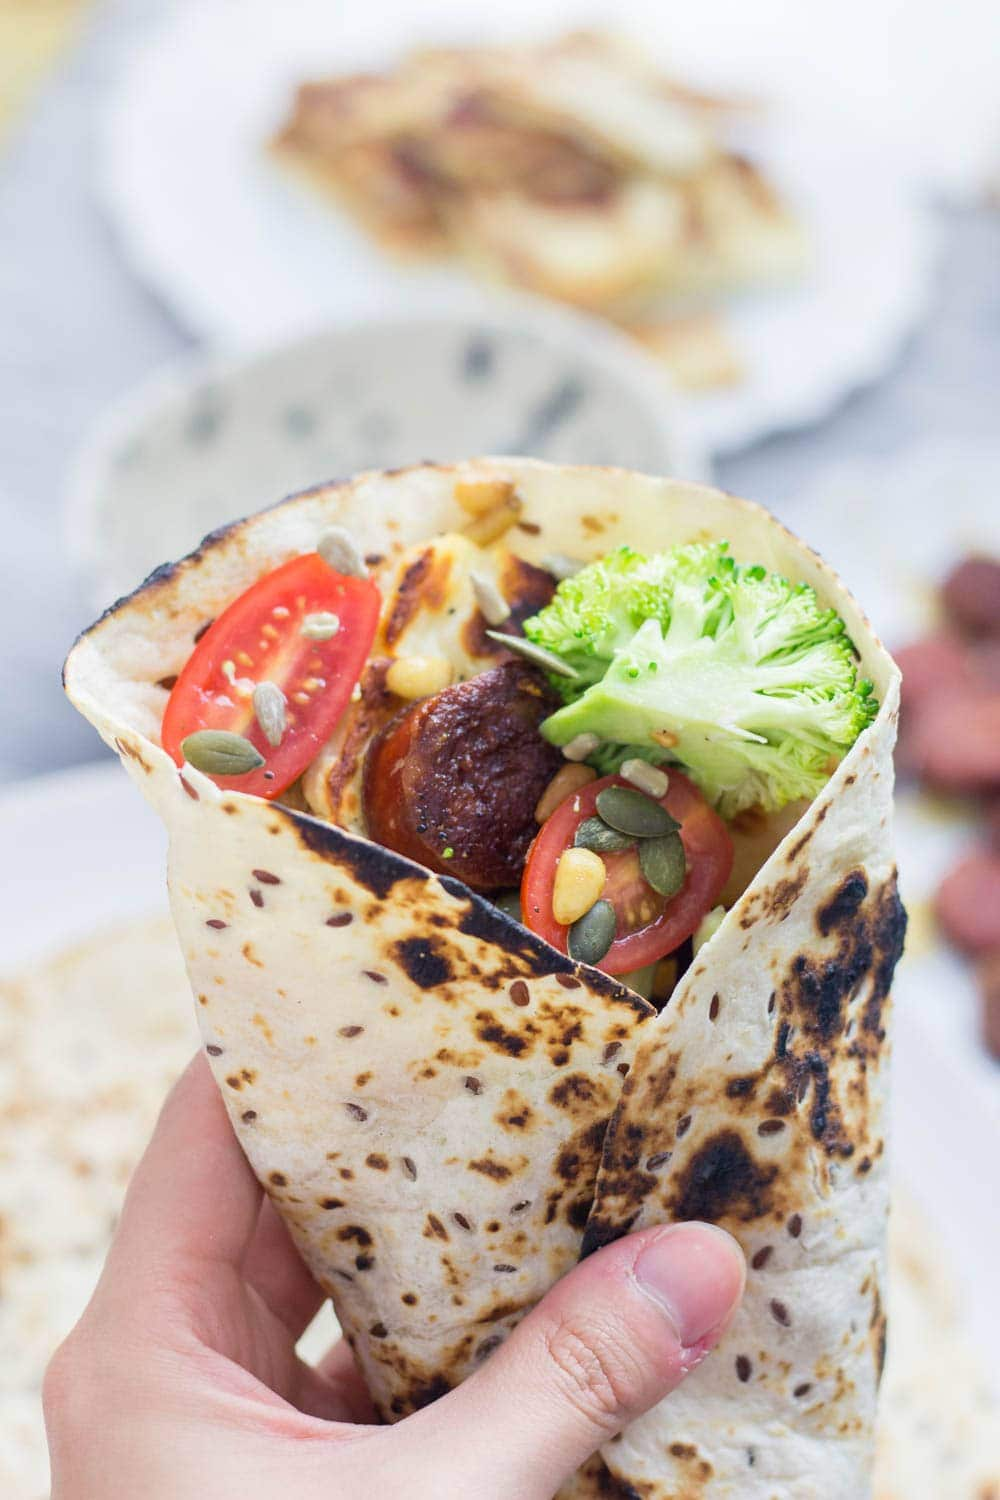 Halloumi & chorizo wraps are such a tasty lunch or dinner. The halloumi & chorizo are wrapped with a fresh broccoli slaw and a sprinkling of nuts and seeds.